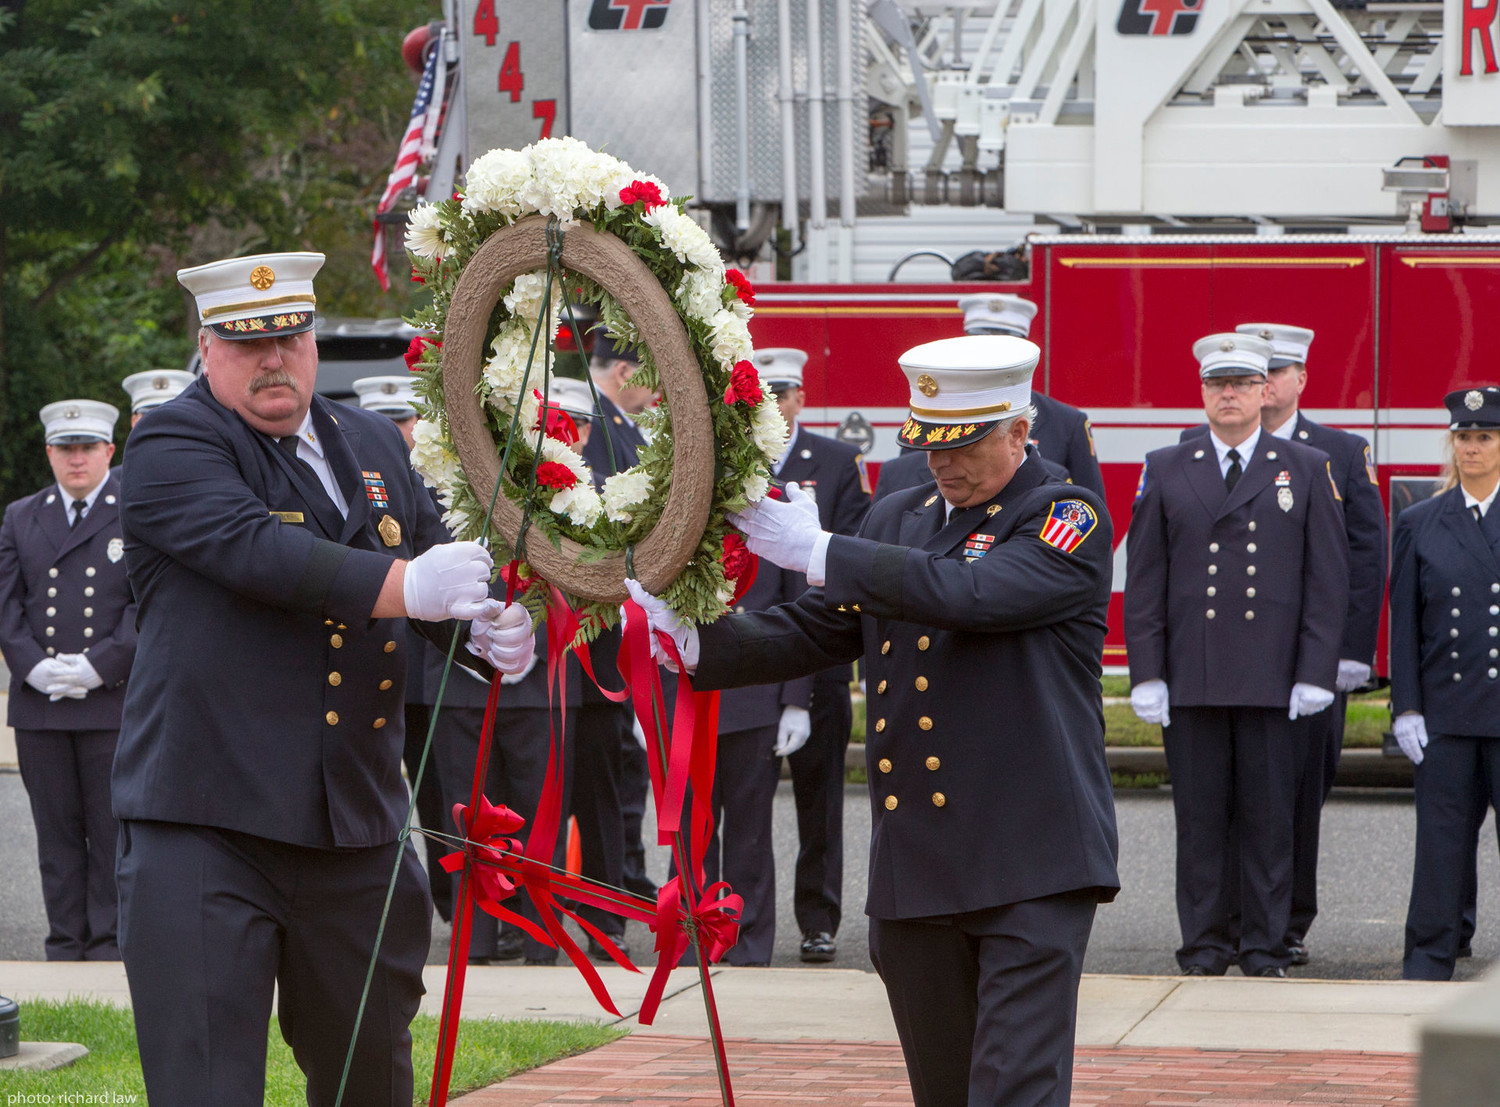 Rockville Centre fire chiefs Eric Burel and James Avondet carried a wreath to the memorial.